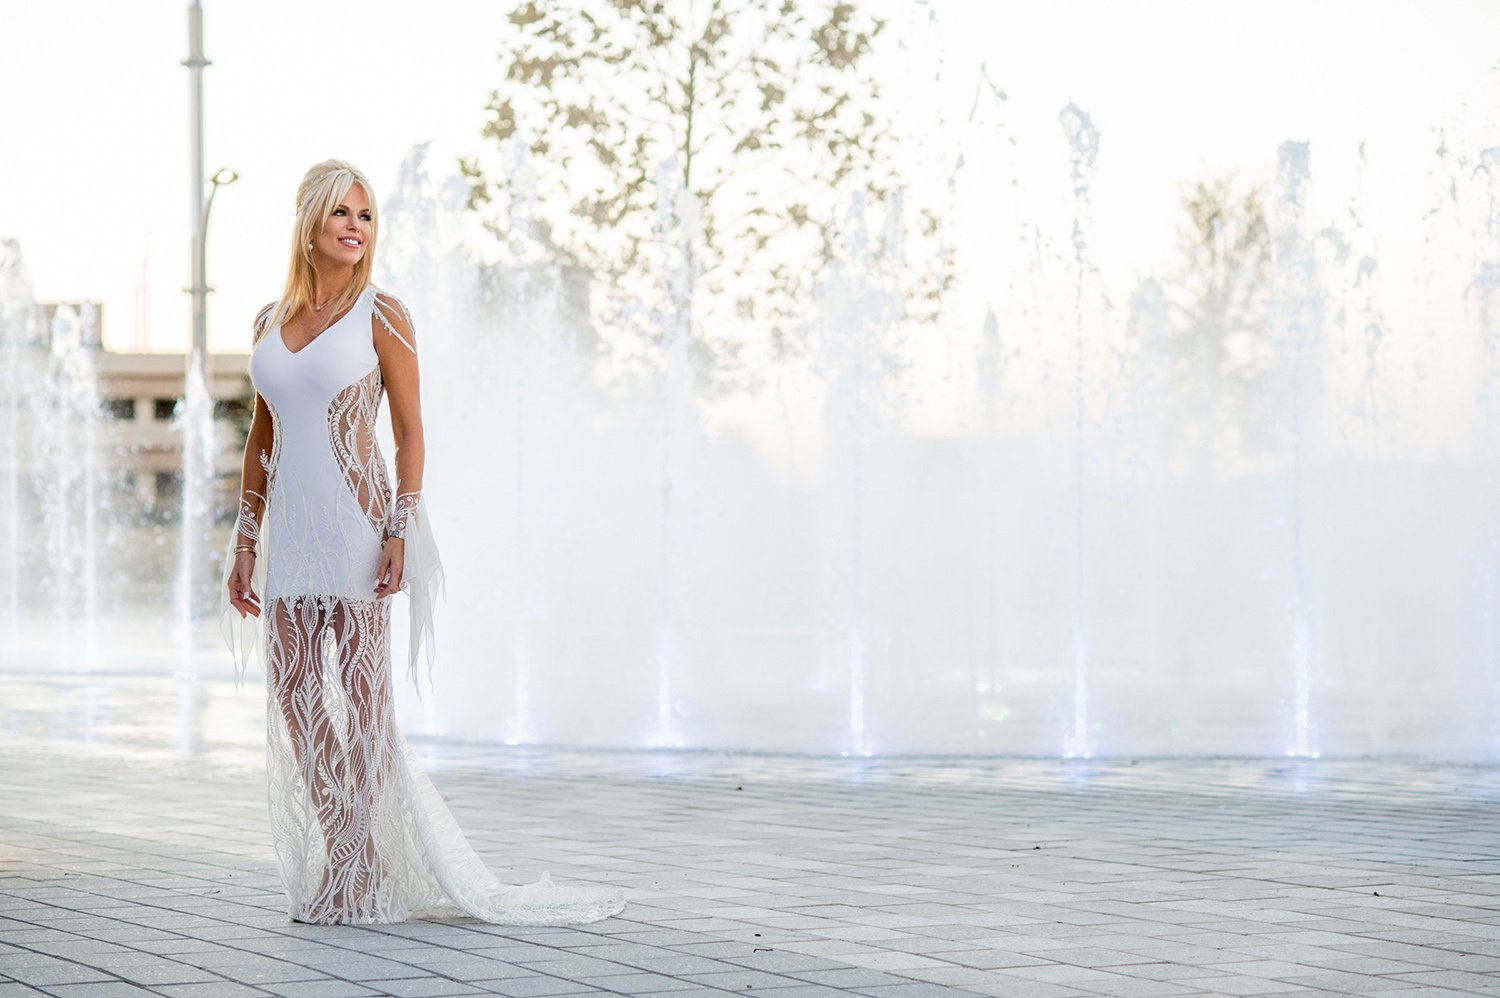 fountain backdrop - bridal portrait - custom, one of a kind wedding dress